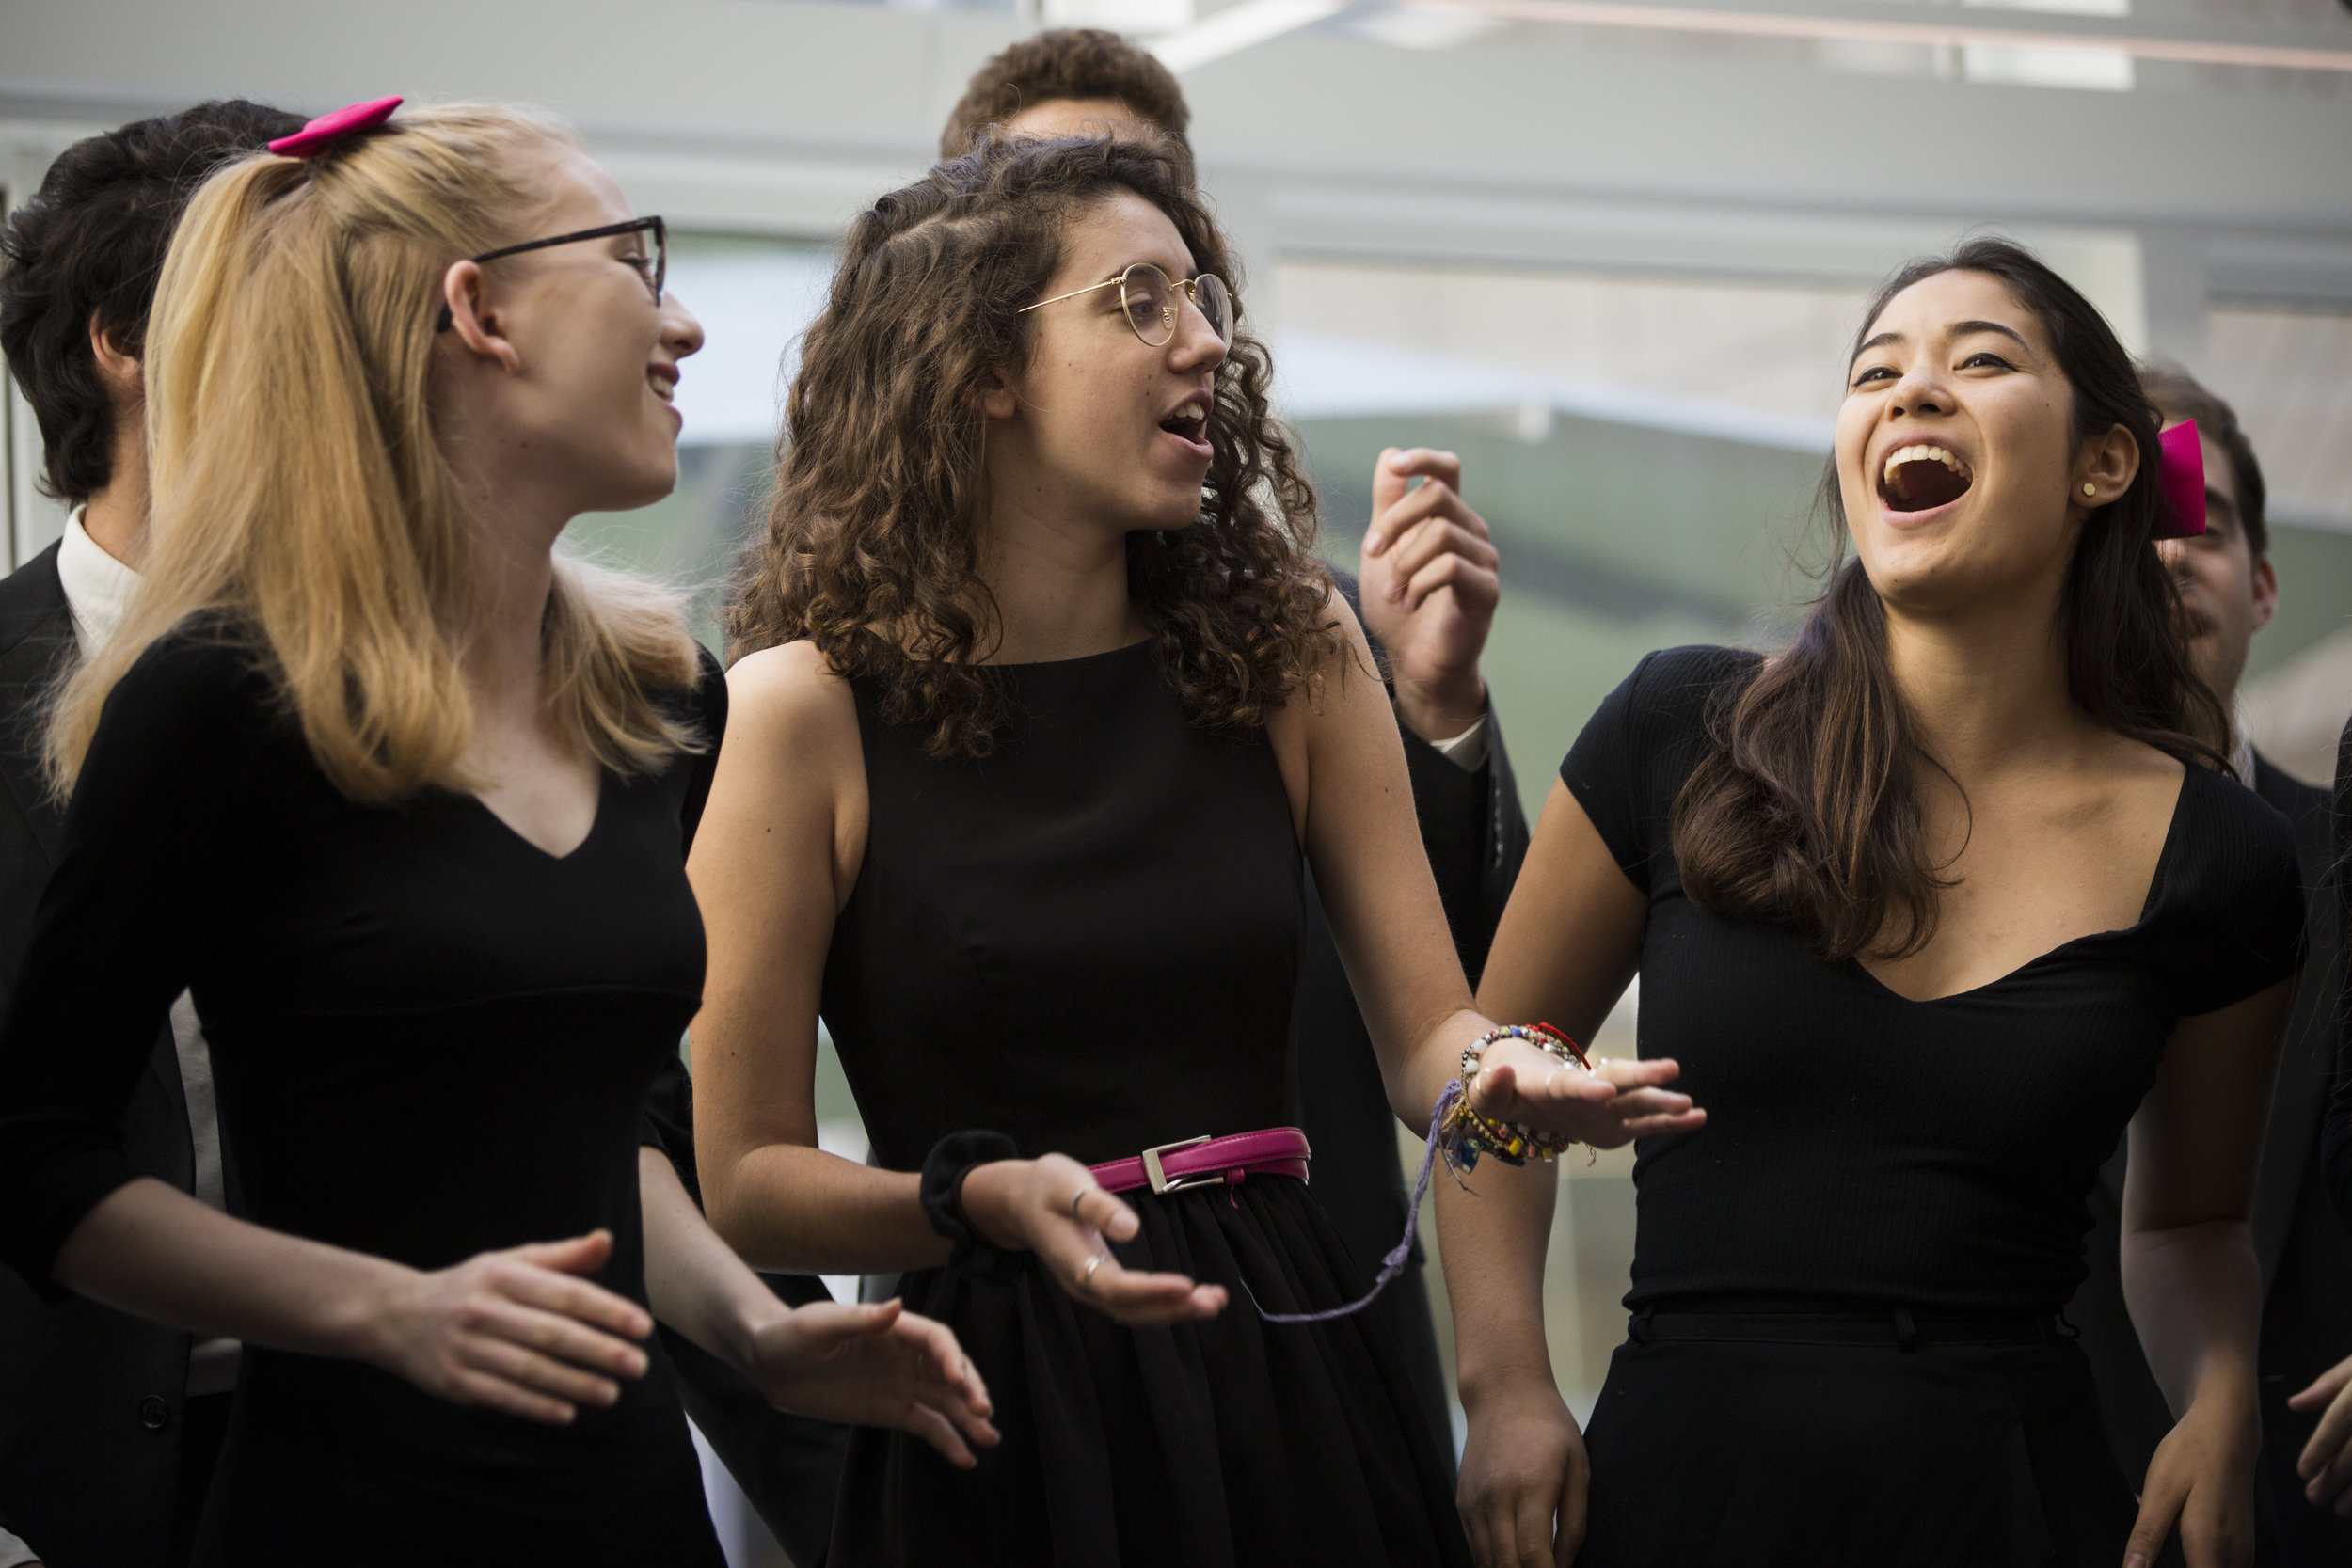 Performing at the opening of Harvard's Pritzker Commons